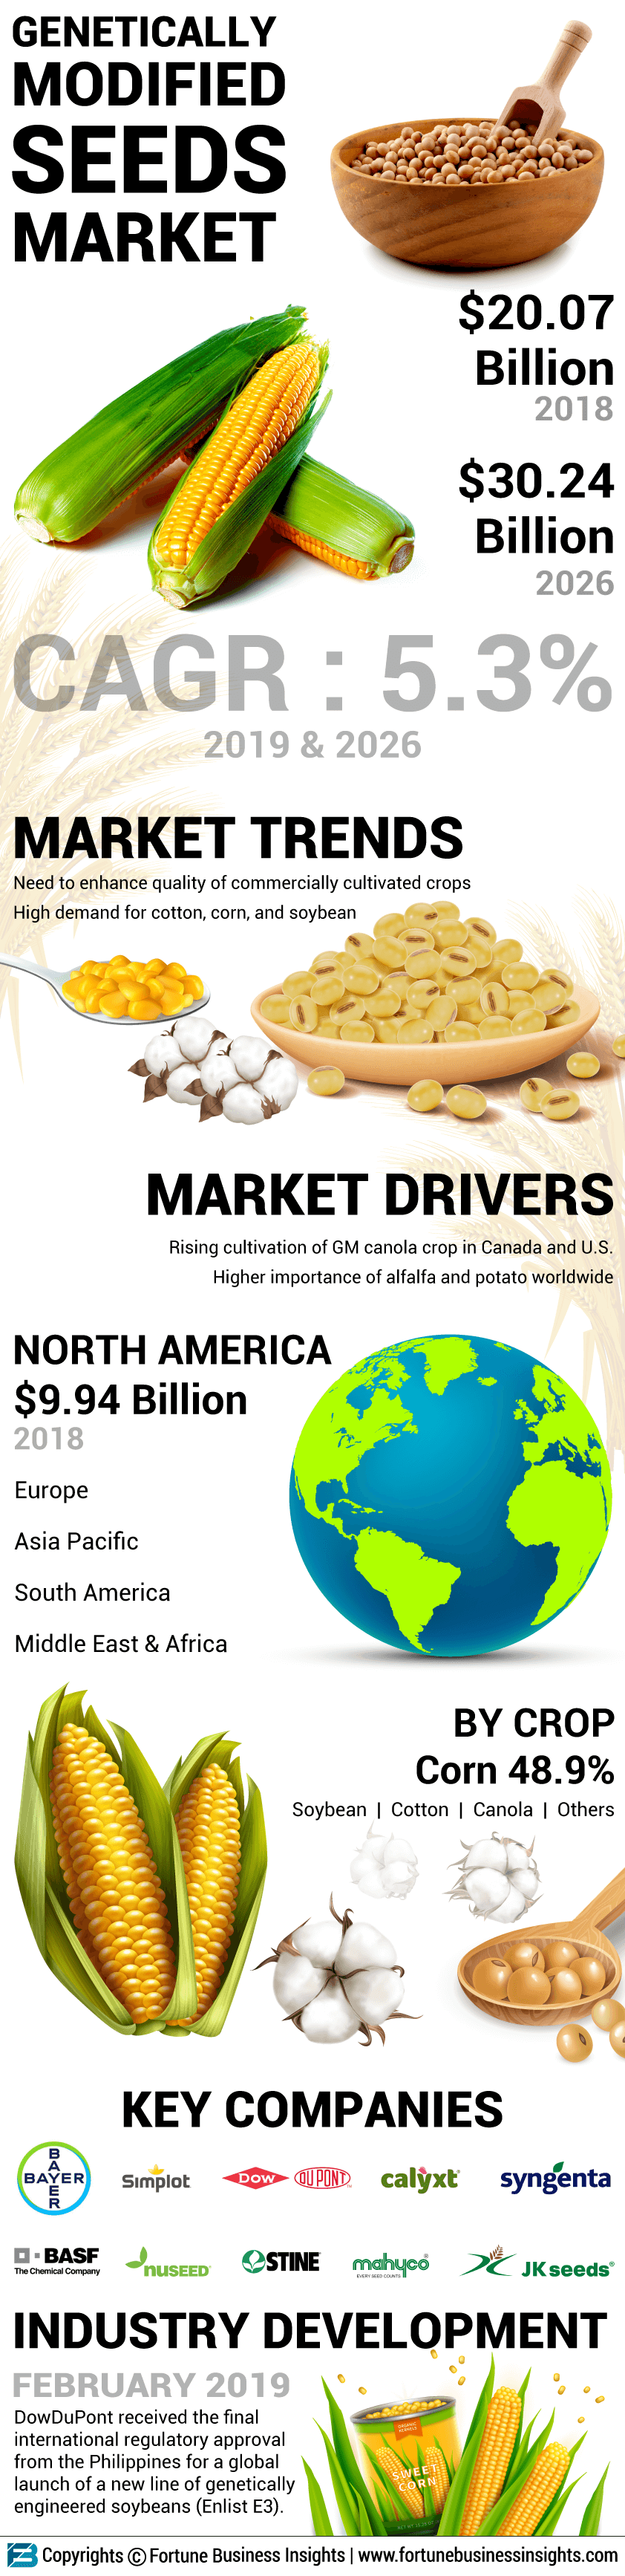 Genetically Modified Seeds Market